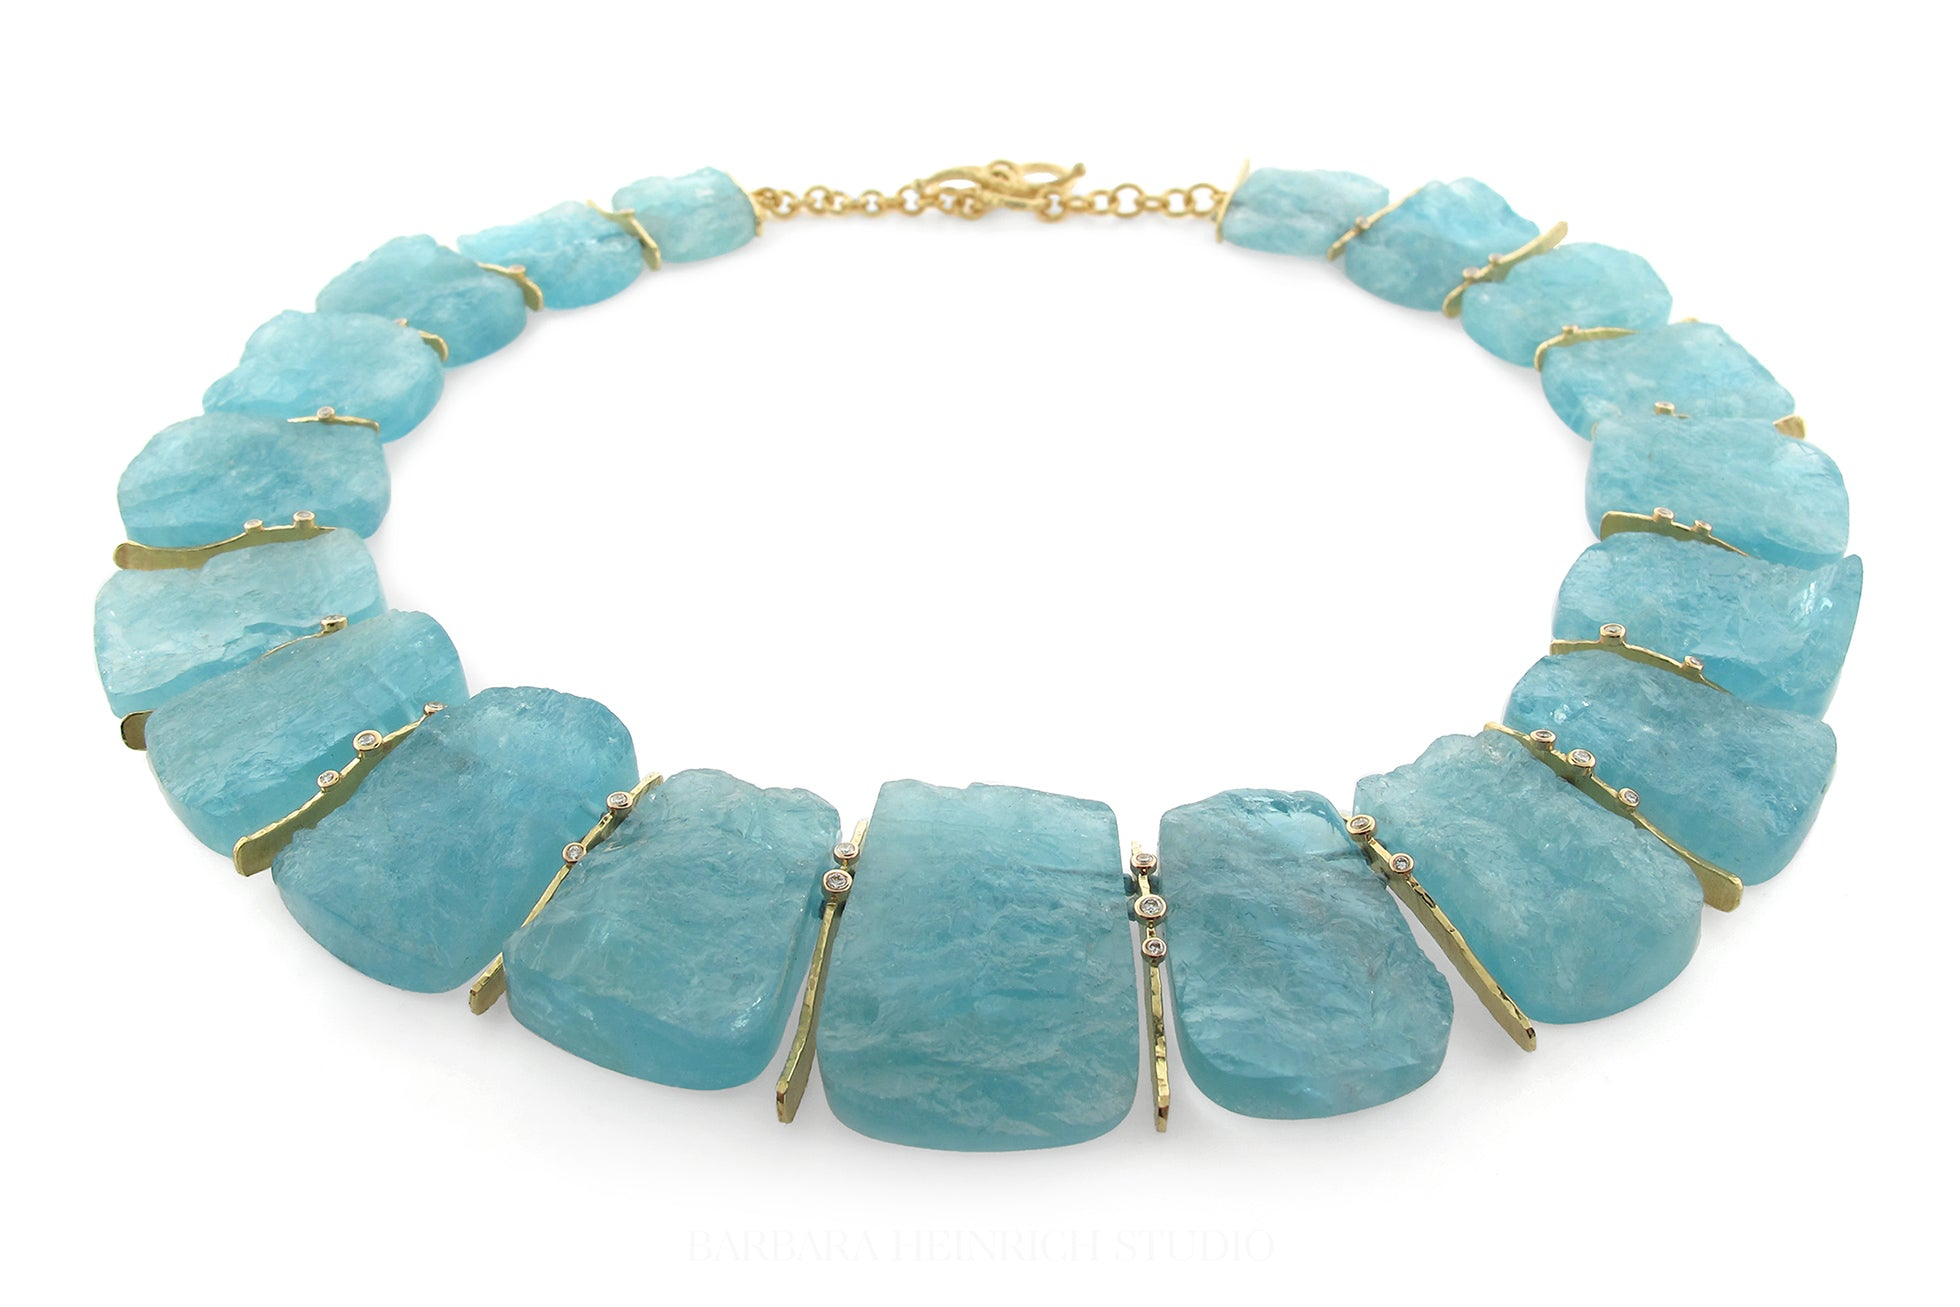 1e5b6f2bb Large rough cut aquamarine slice necklace with hand fabricated 18k gold  spacers and scattered diamond accents, 0.445 ctw. Style 3176g.